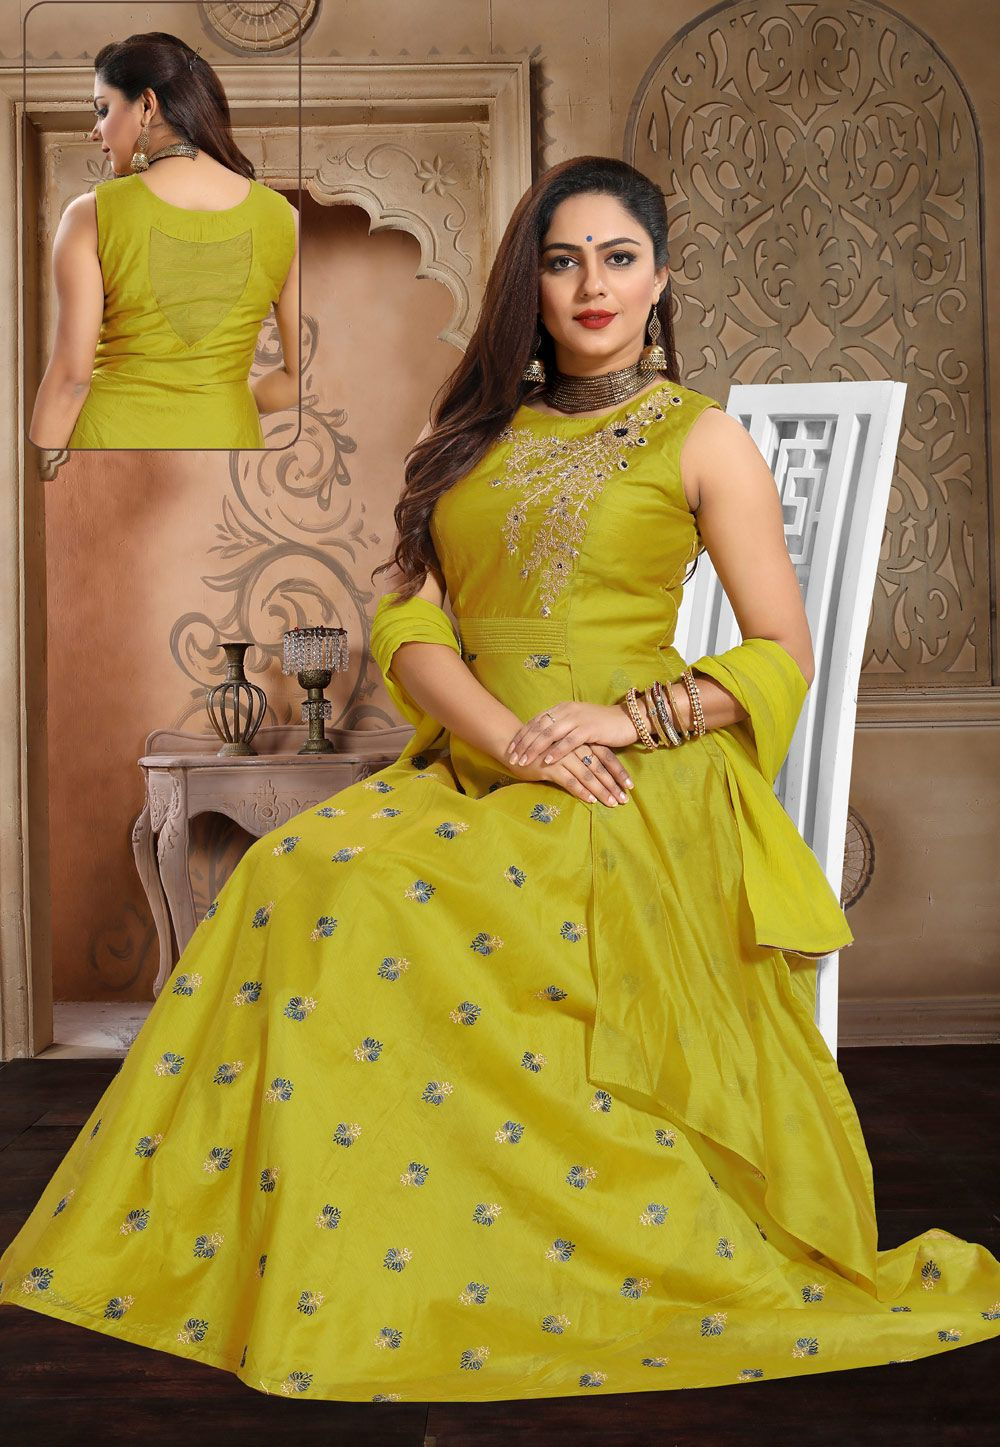 7acc01bcca3e Buy Green Chanderi Silk Readymade Long Anarkali Suit 154629 online at  lowest price from huge collection of salwar kameez at Indianclothstore.com.